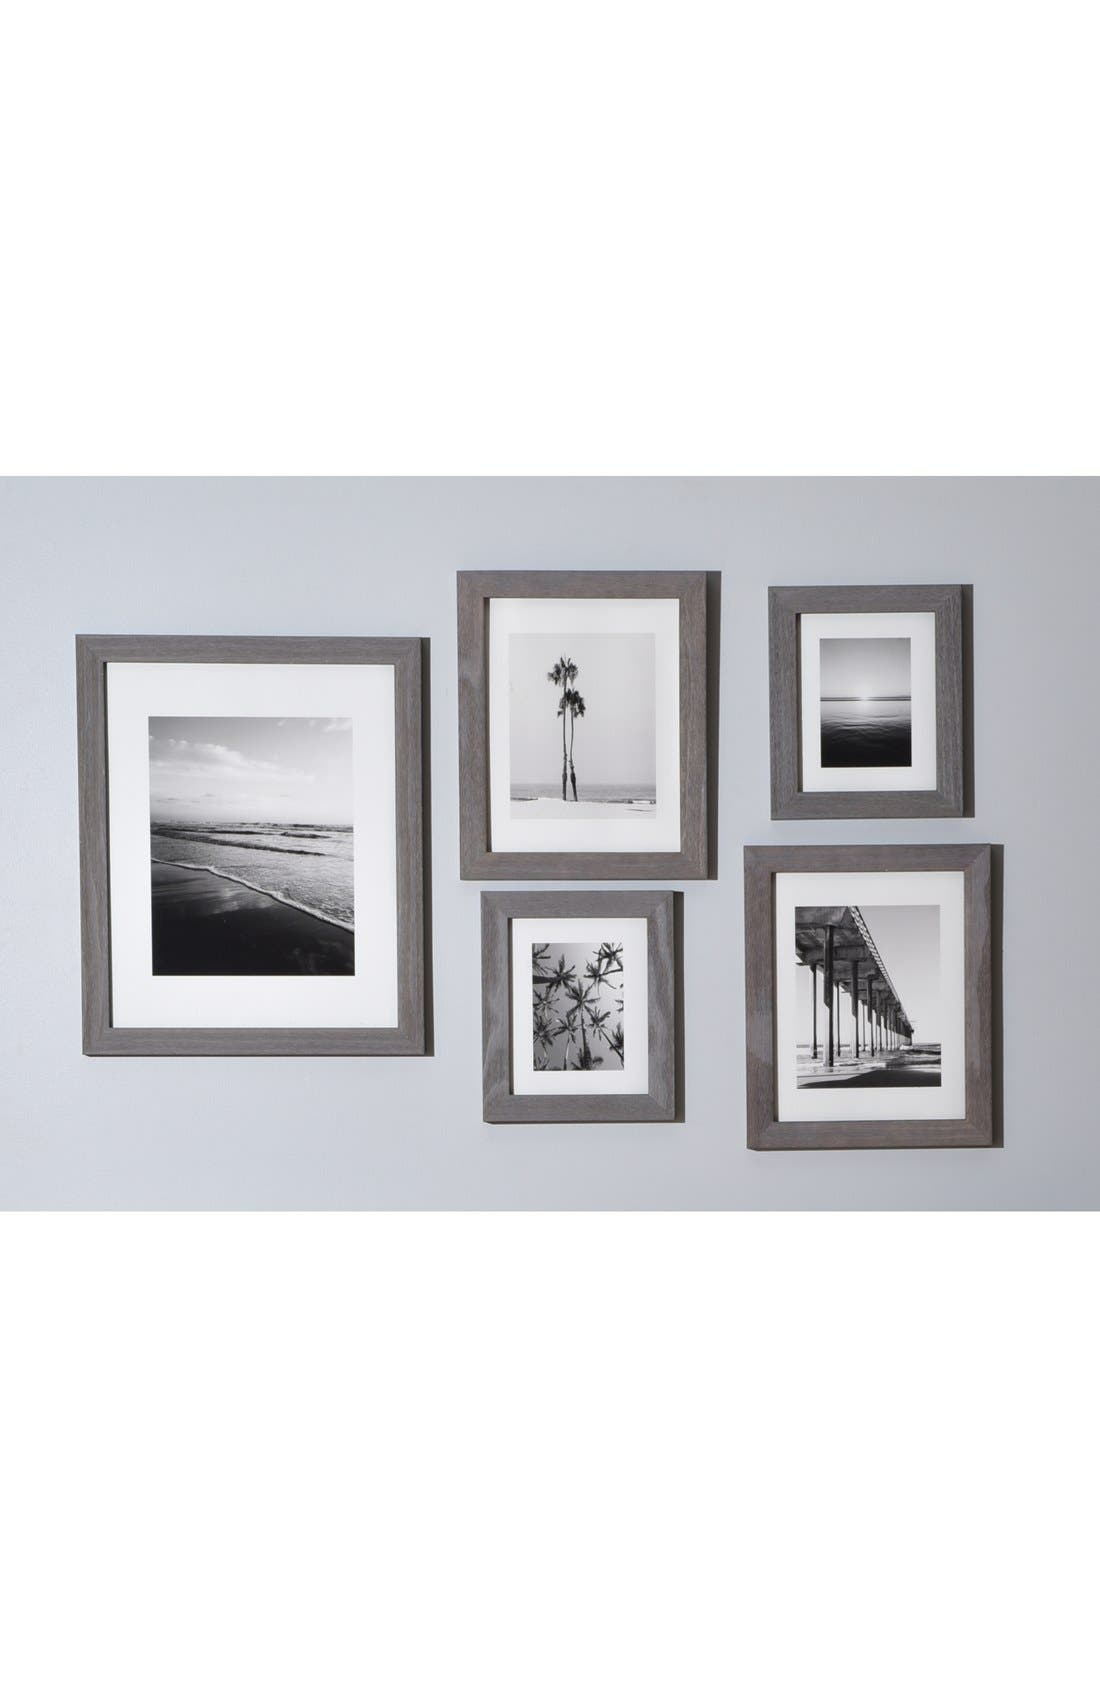 DENY DESIGNS,                             'Ombré Beach' Wall Art Print Set,                             Alternate thumbnail 6, color,                             WHITE